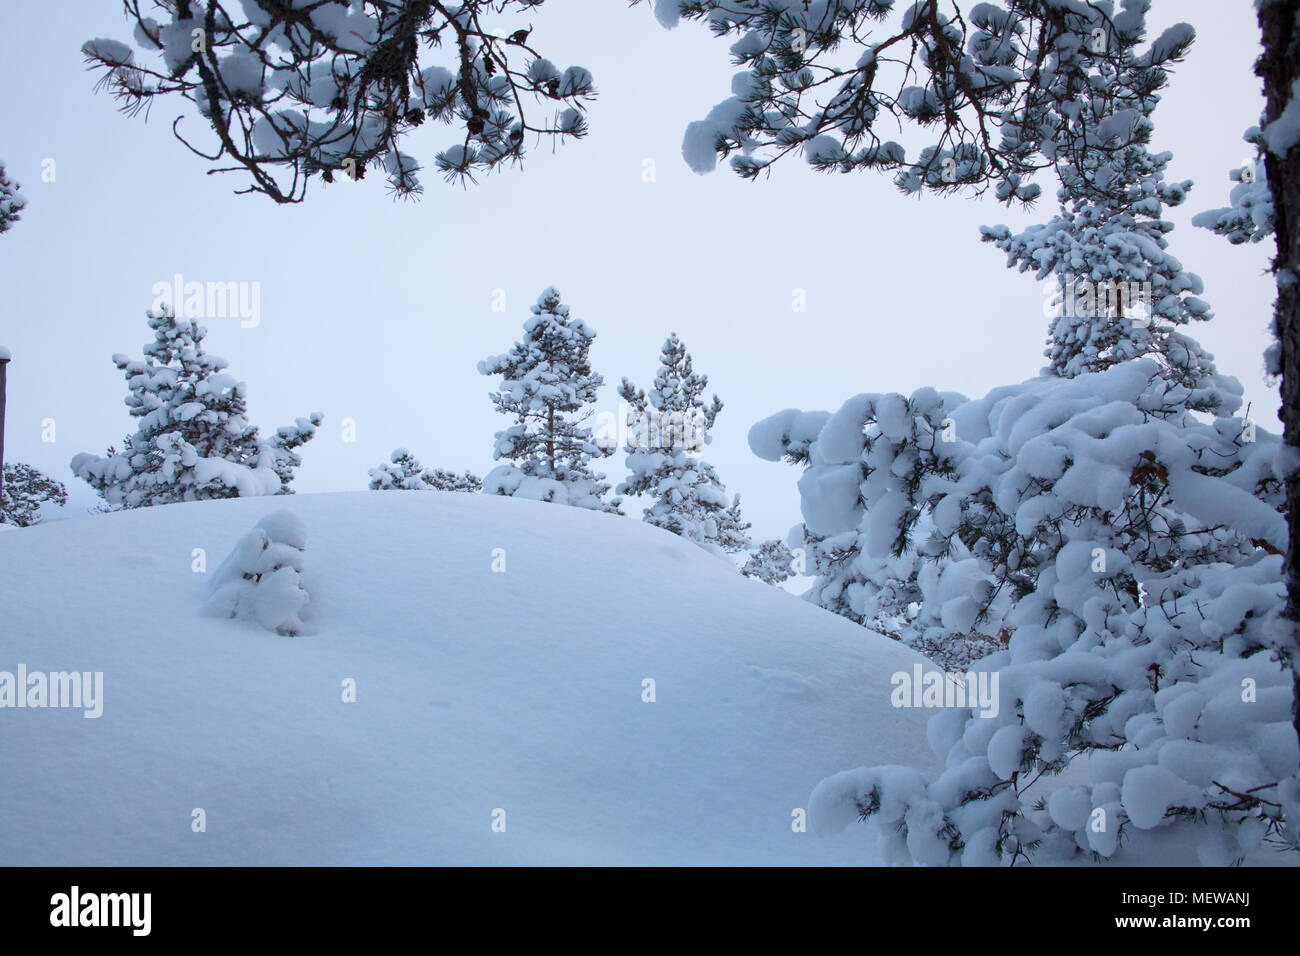 Snow covered pine trees and boulders are forming an intricate pattern in the blue light of dusk. - Stock Image